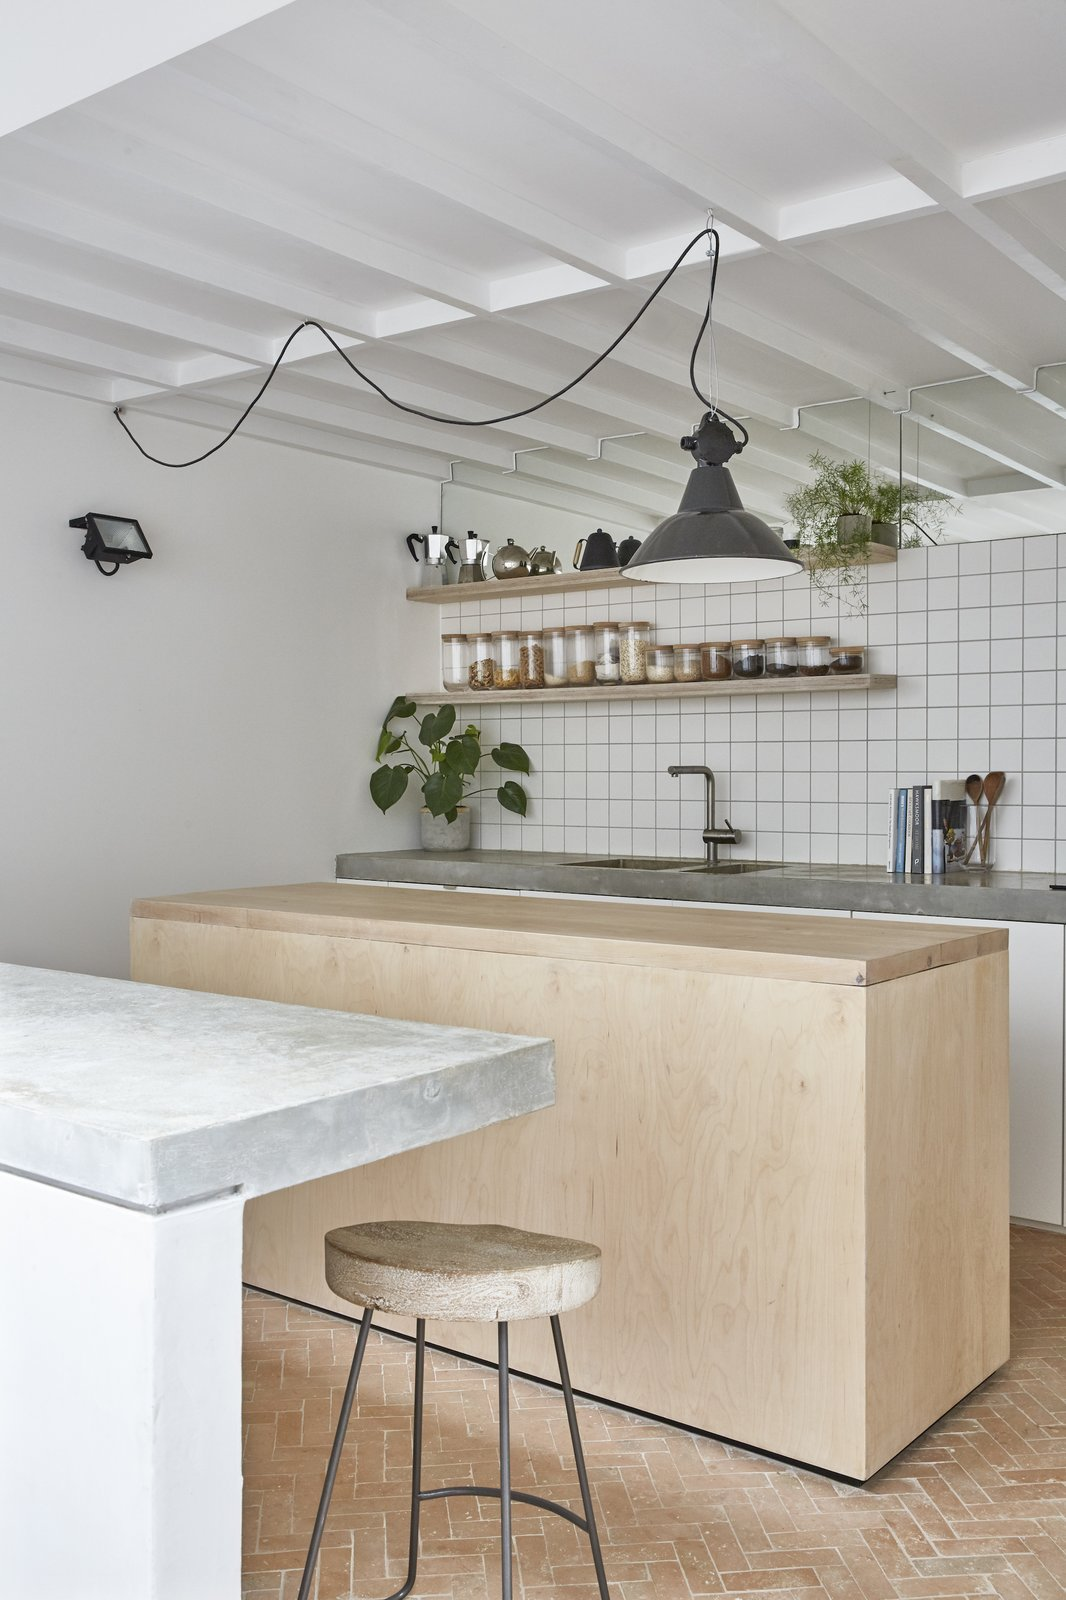 Kitchen, Wood Counter, Wood Cabinet, Drop In Sink, White Cabinet, Wall Lighting, Pendant Lighting, Ceramic Tile Floor, Ceramic Tile Backsplashe, and Concrete Counter Bespoke joinery, tiled finishes, concrete tops and high-level mirrors to the kitchen  Hackney Mews House by HUTCH design